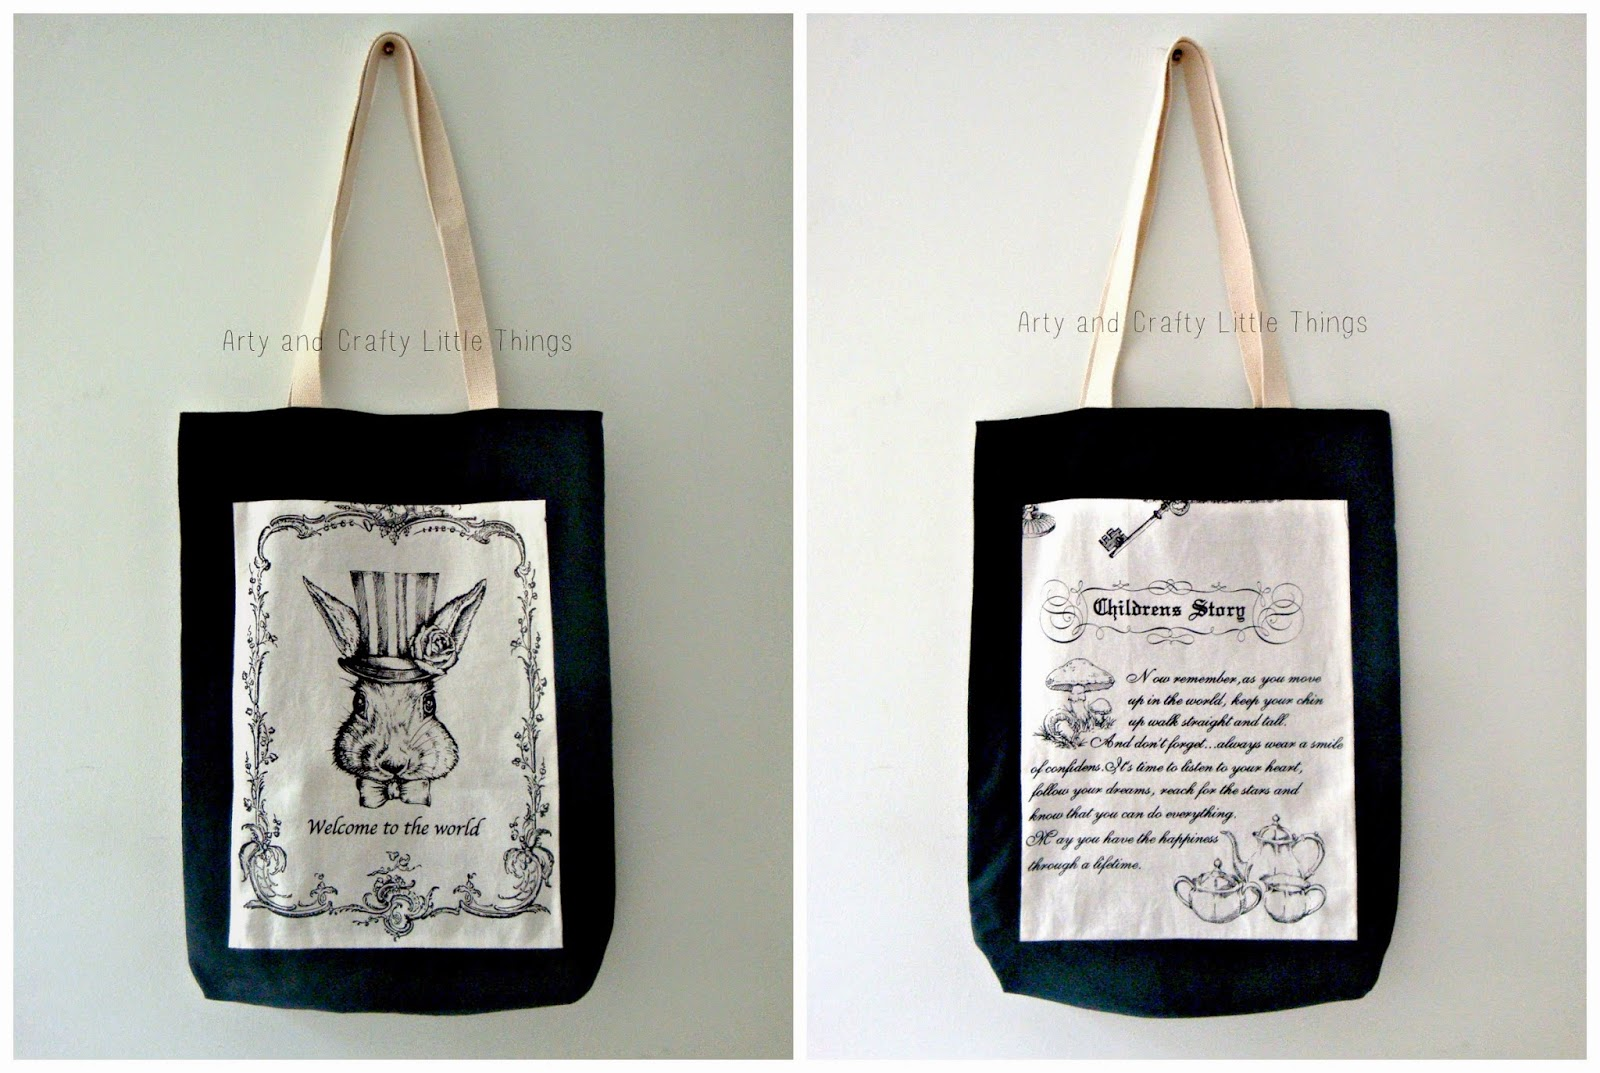 Alice in wonderland's bag